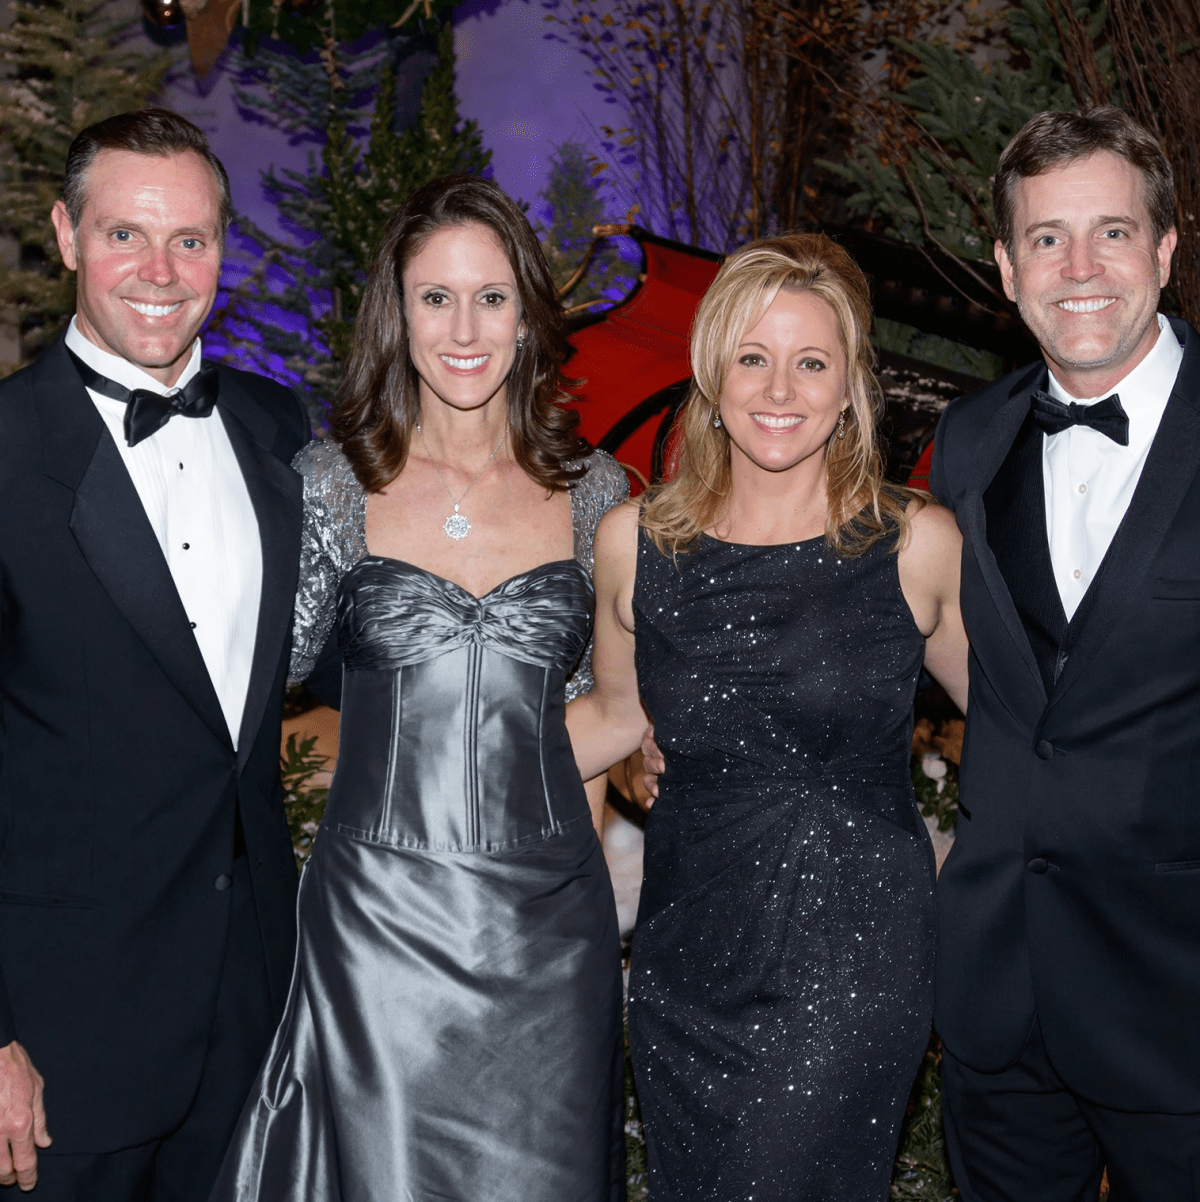 Mark Robbins, Katie Robbins, Kristi Meinecke, Chris Meinecke, Crystal Charity Ball 2017